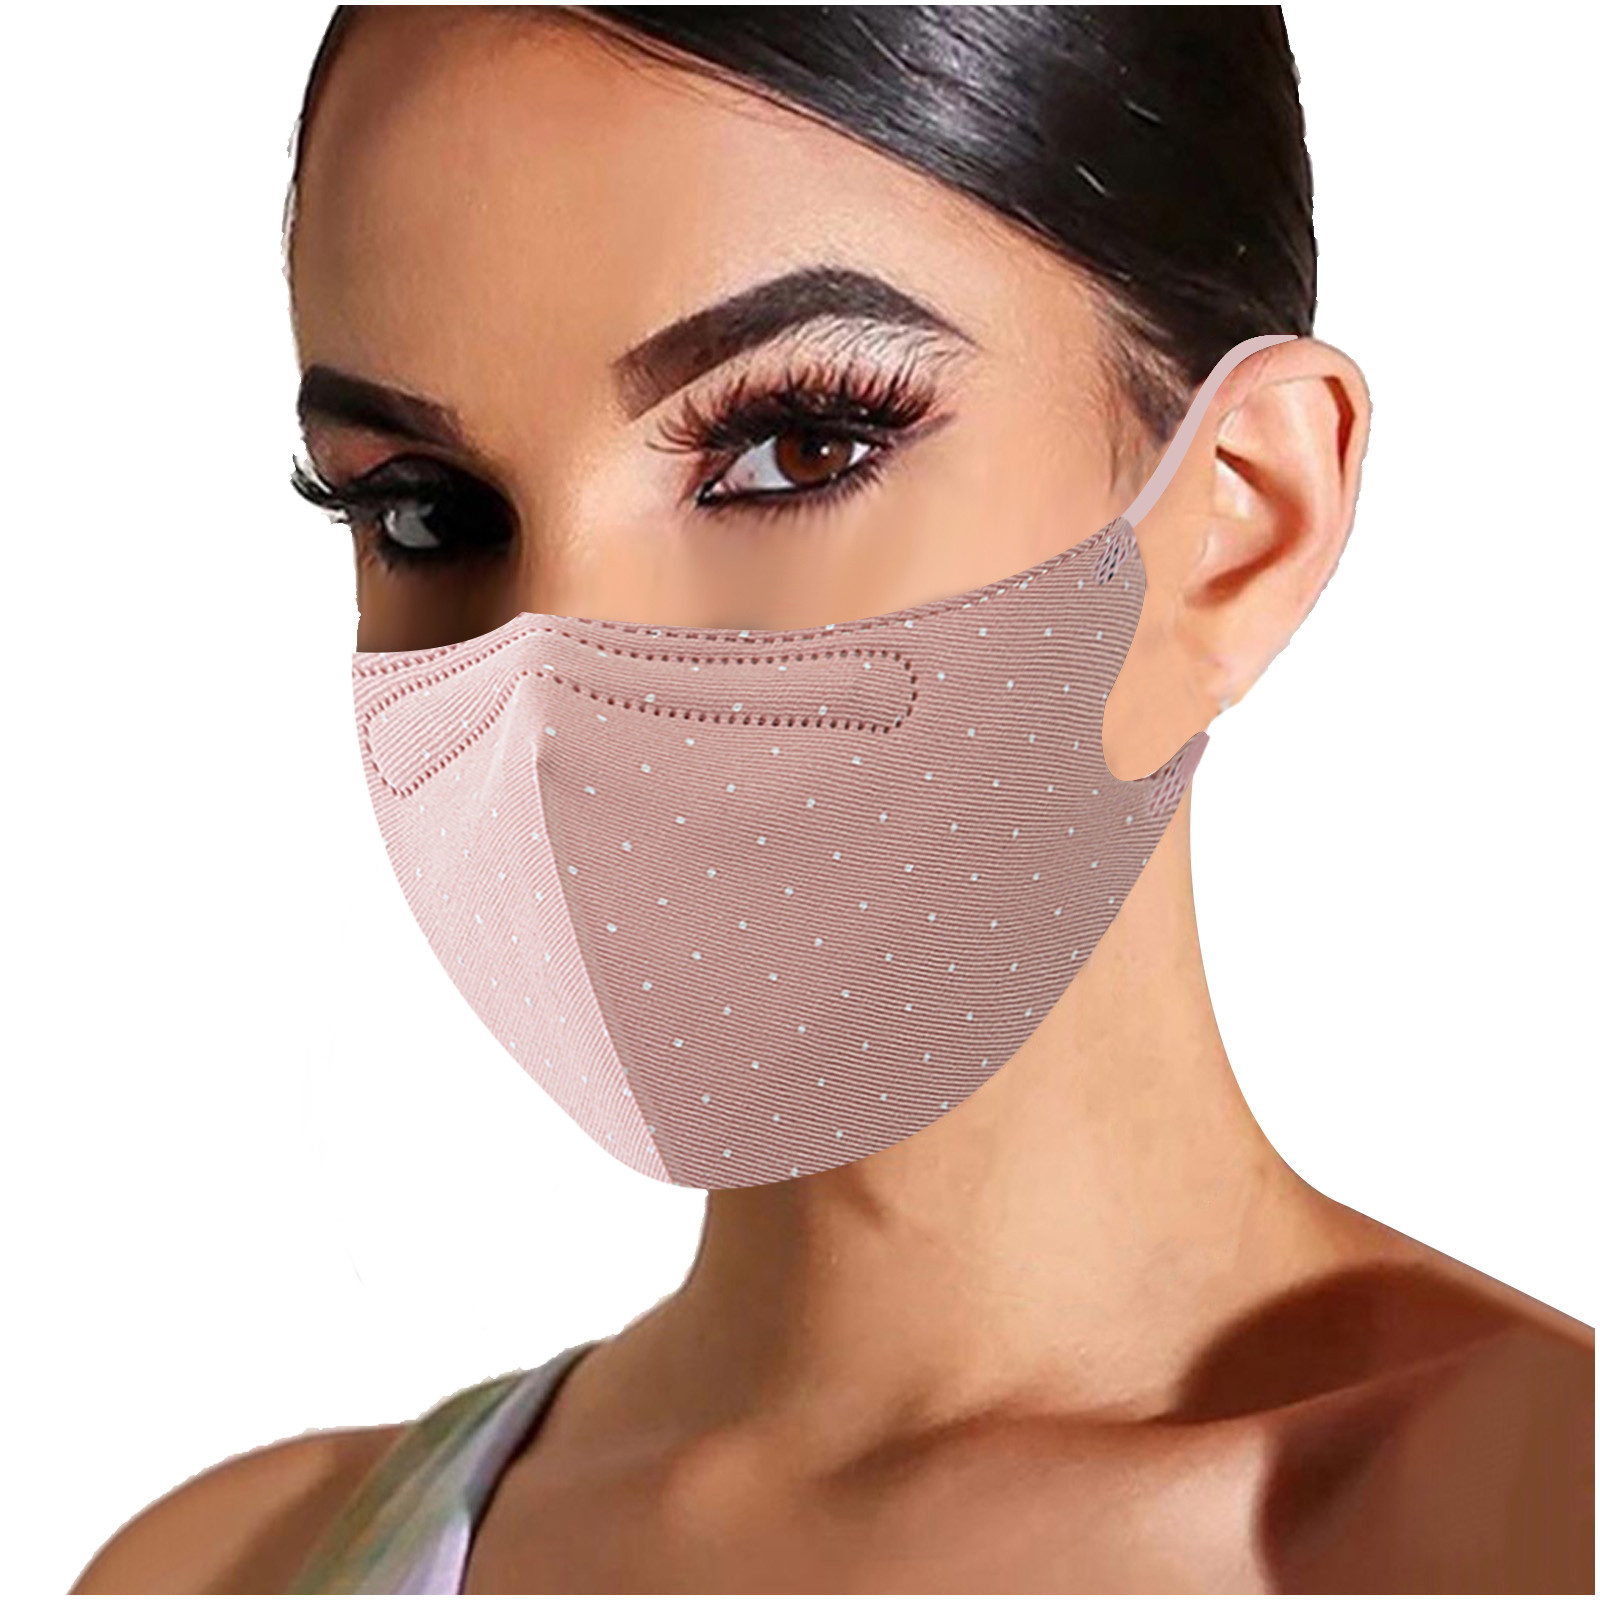 1PC Adult Woman Mouth Cover Solid color Polka Dot Print Adjustable Washable Safety Protect Haze Breathable Reusable Face Mask